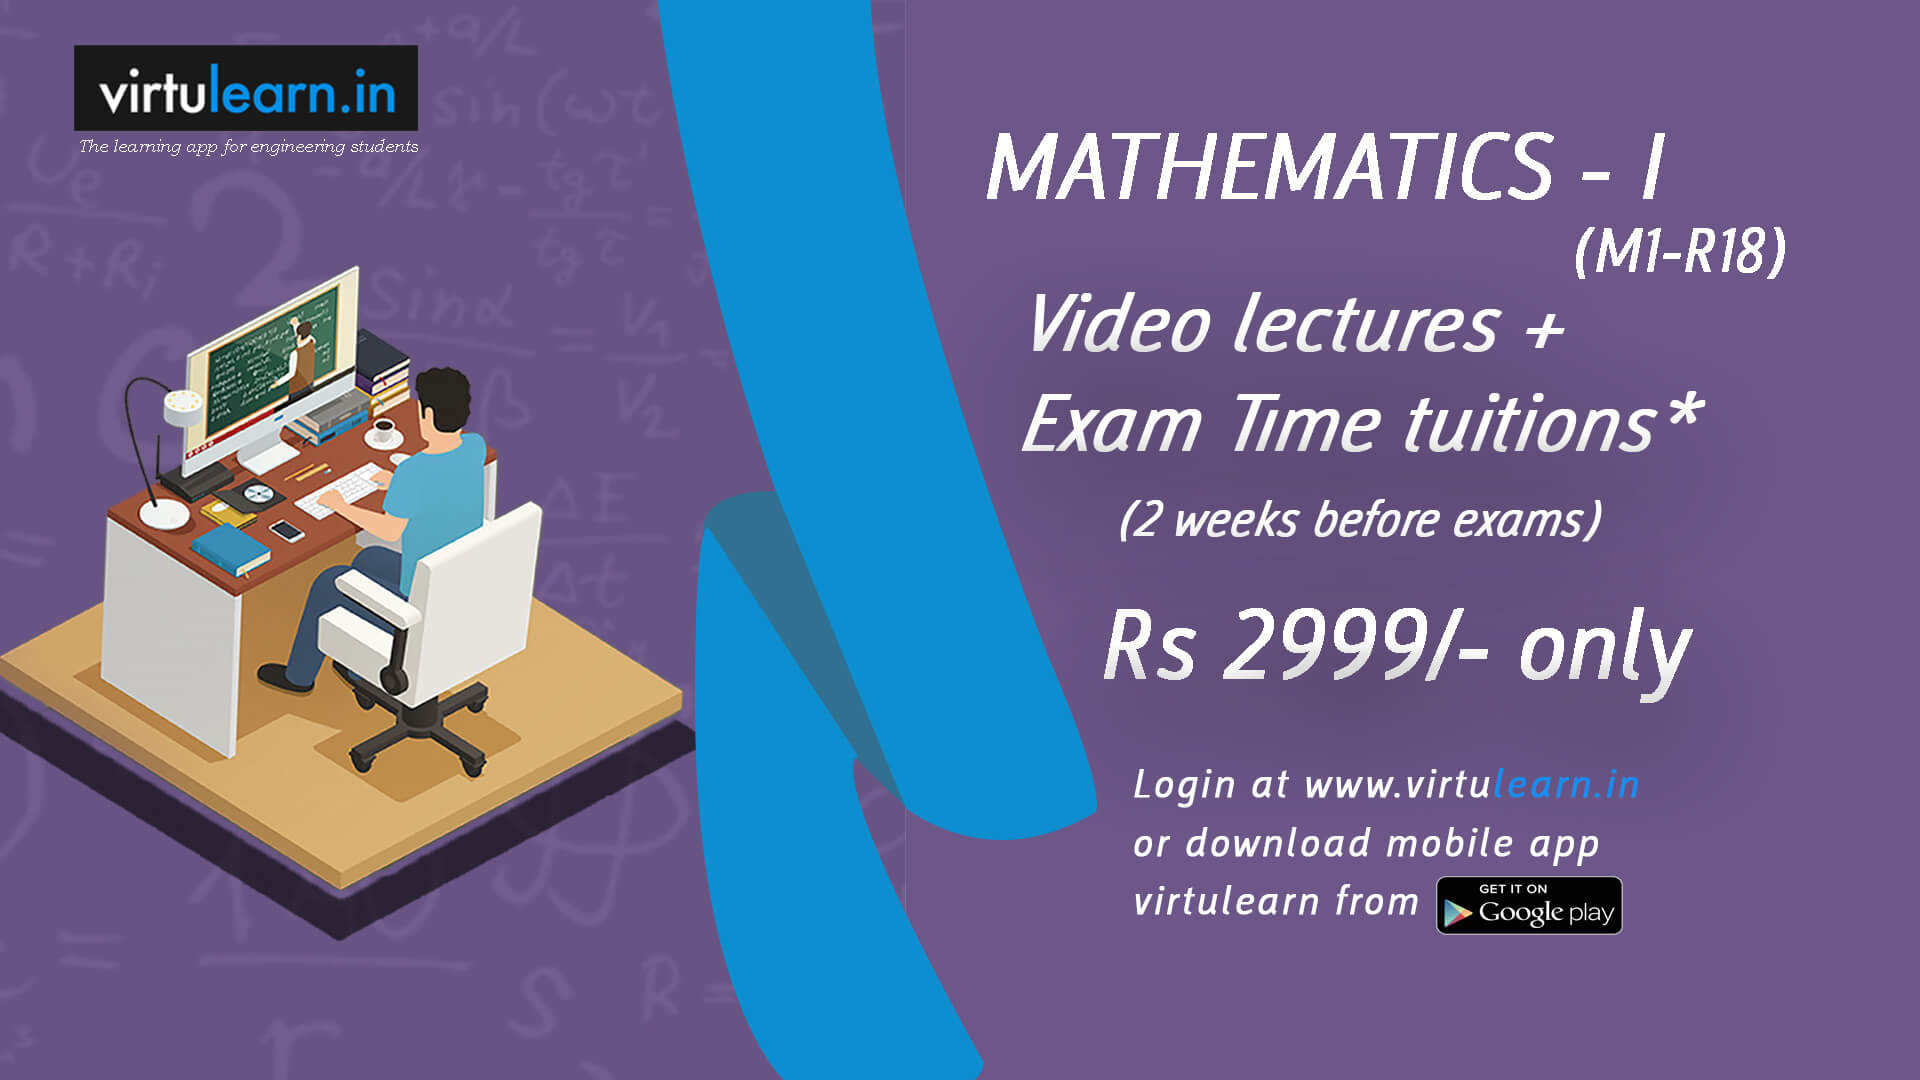 M1-R18 (Exam Focus) online videos